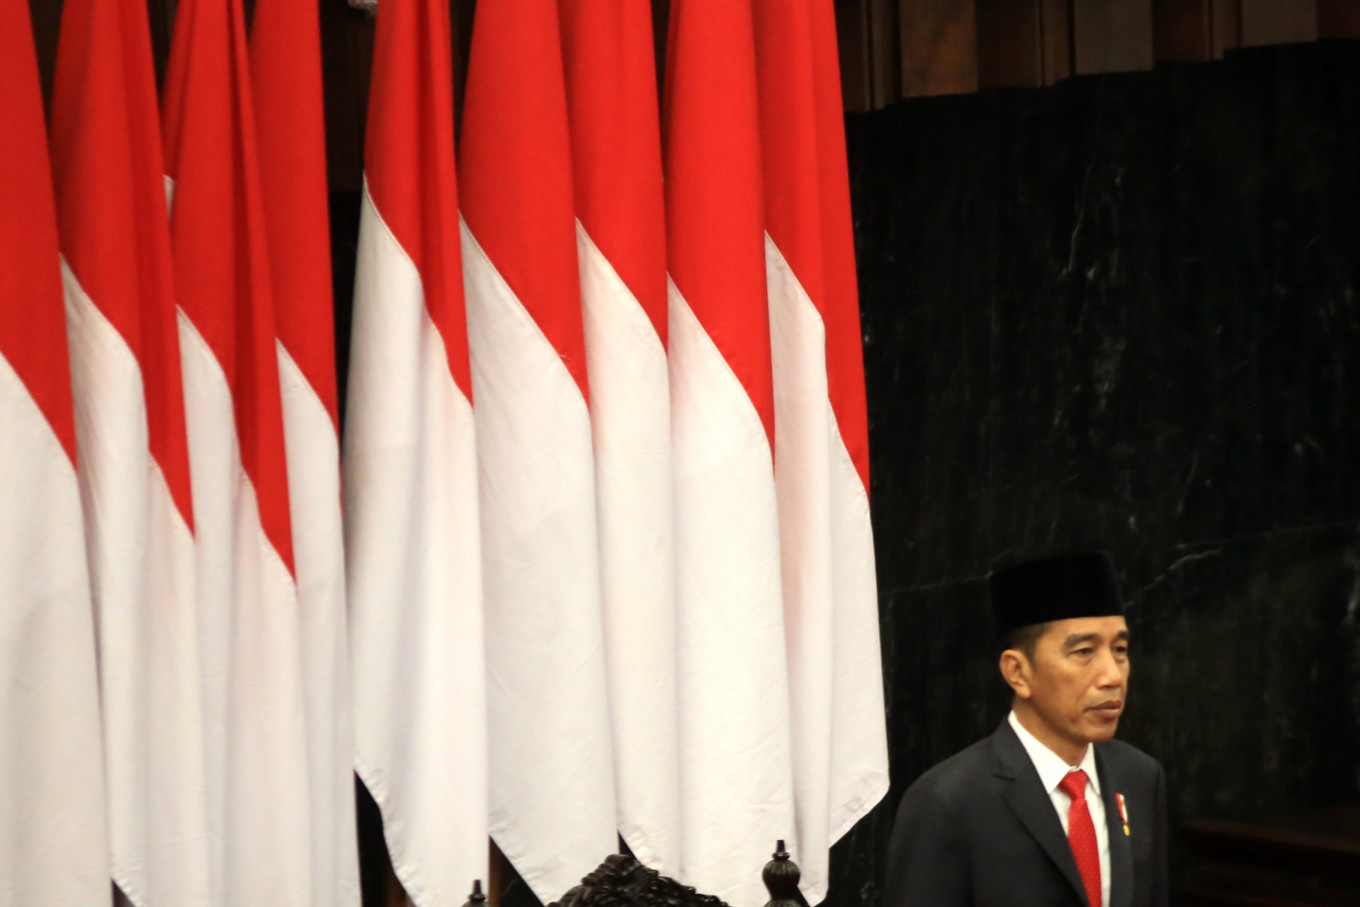 Jokowi, Ma'ruf inaugurated as president, vice president